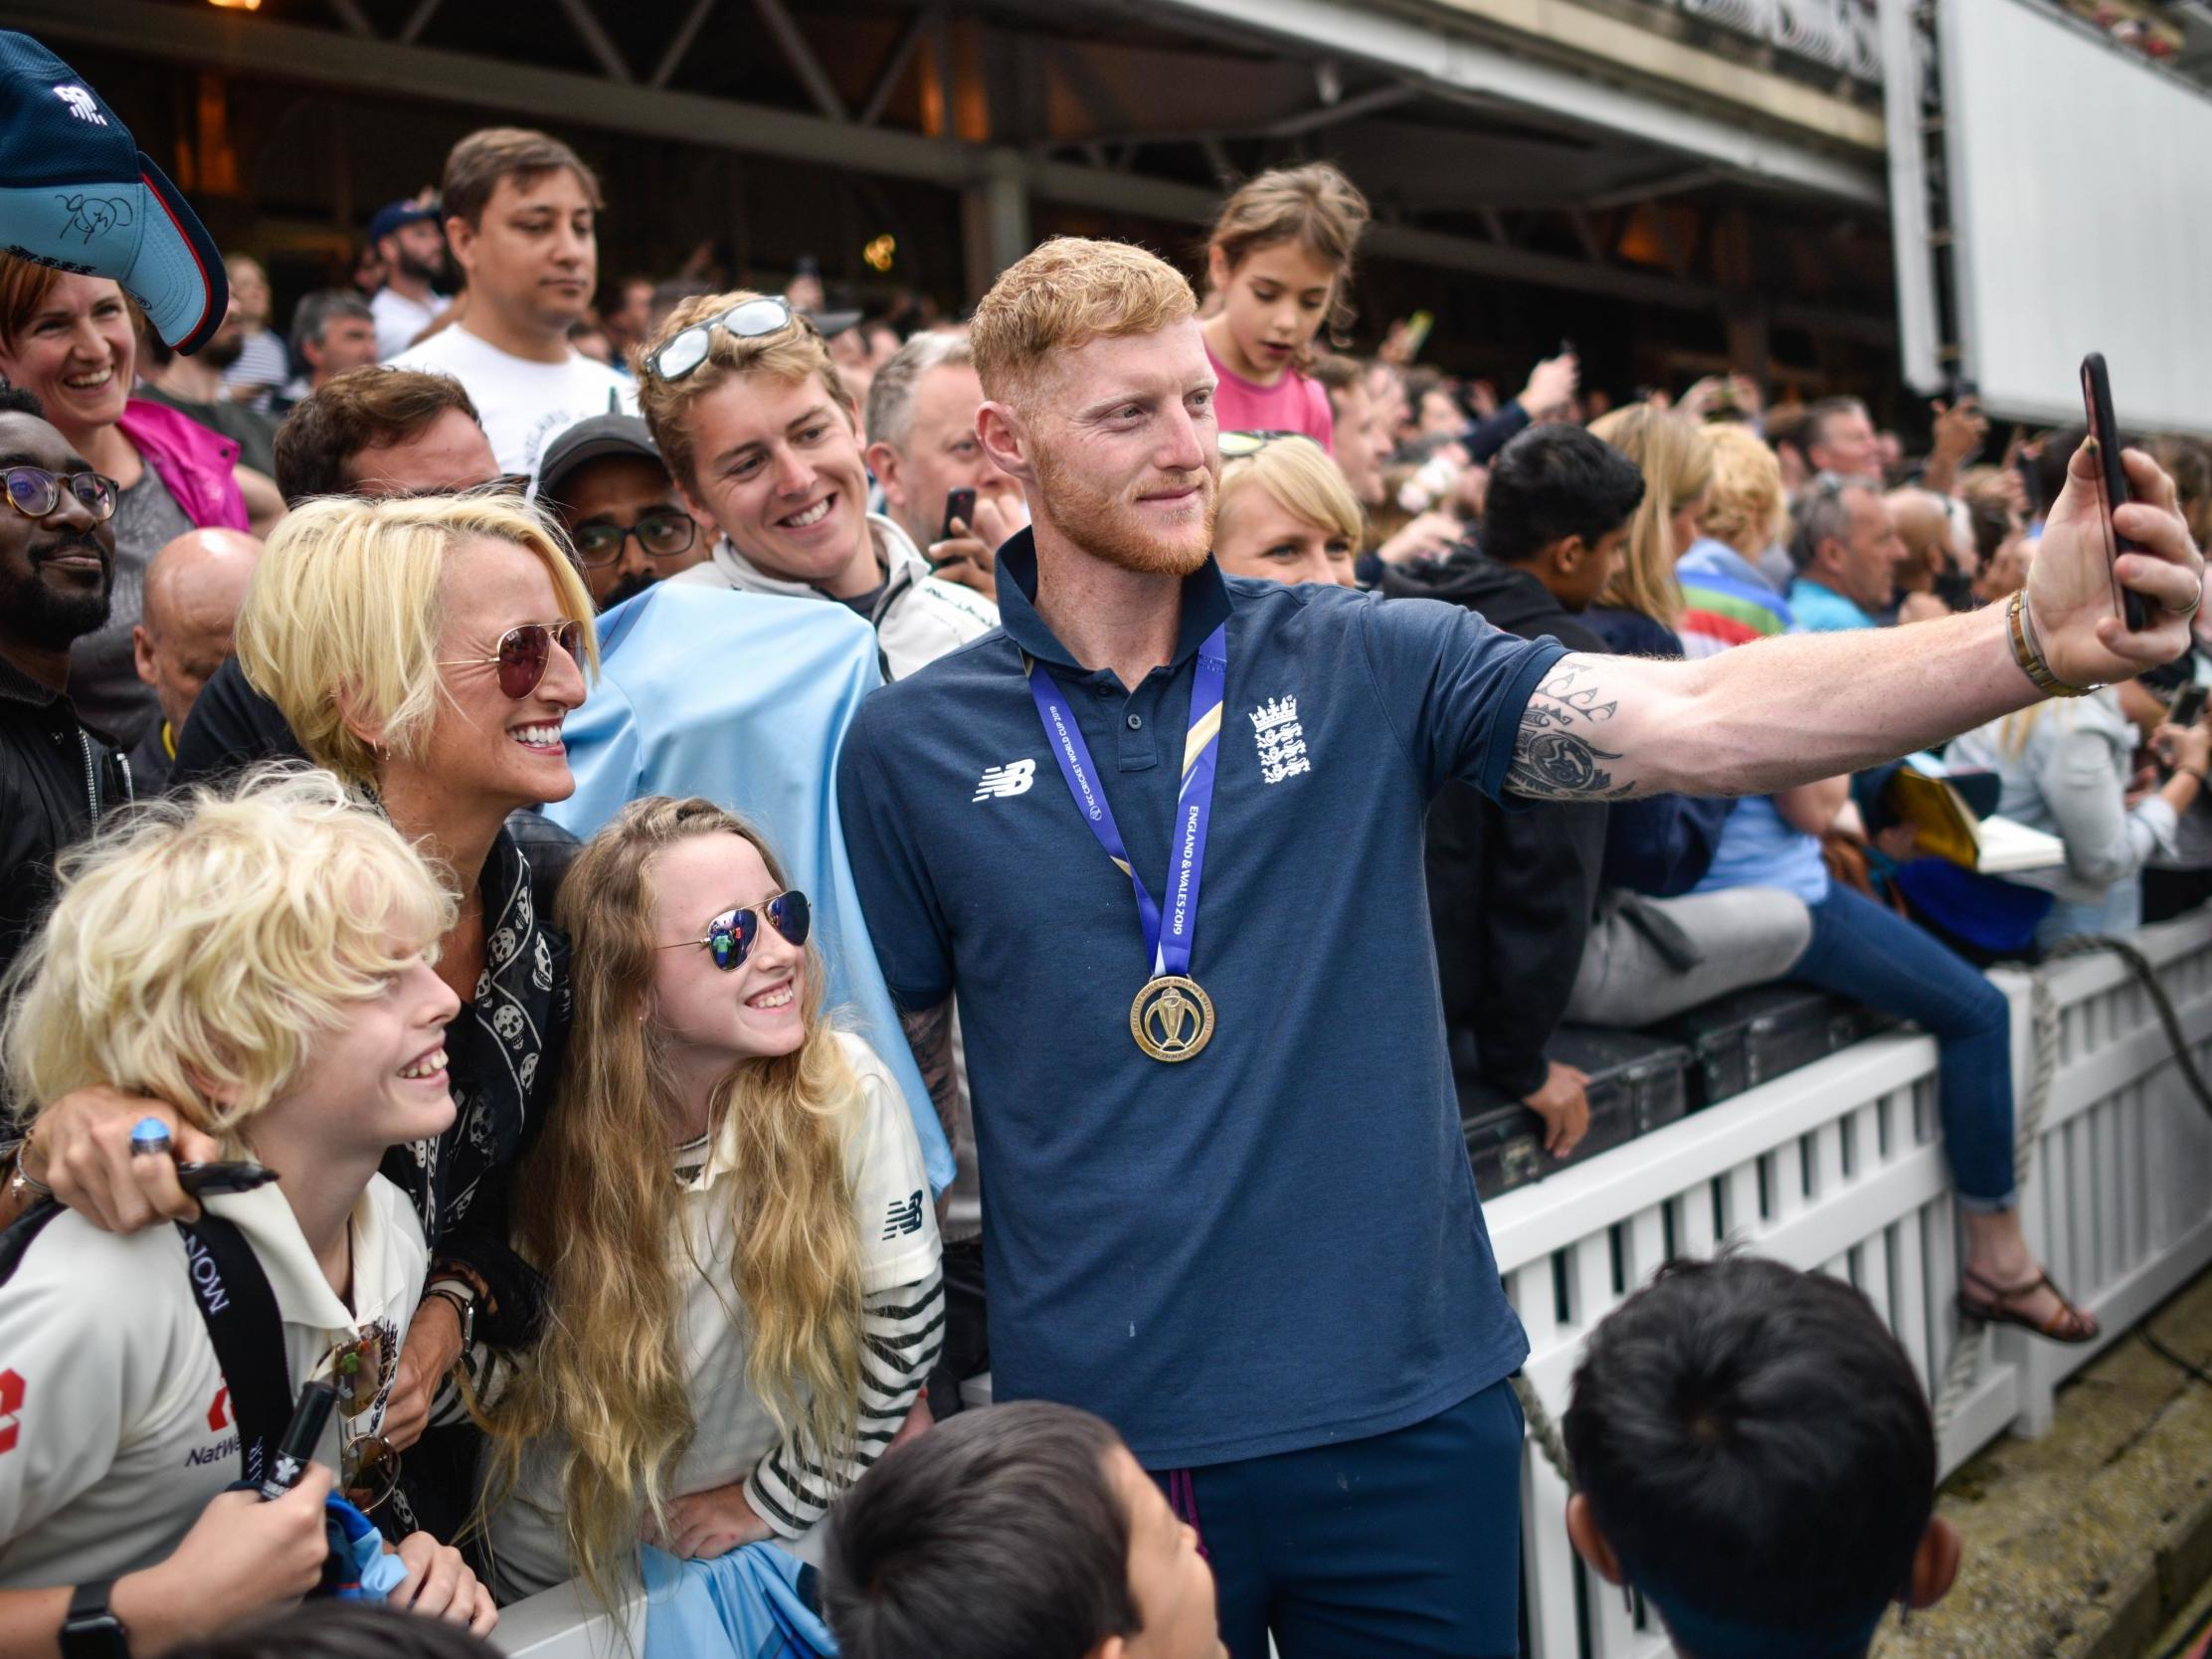 Boris Johnson and Jeremy Hunt promise to make Ben Stokes a knight for World Cup heroics if elected PM